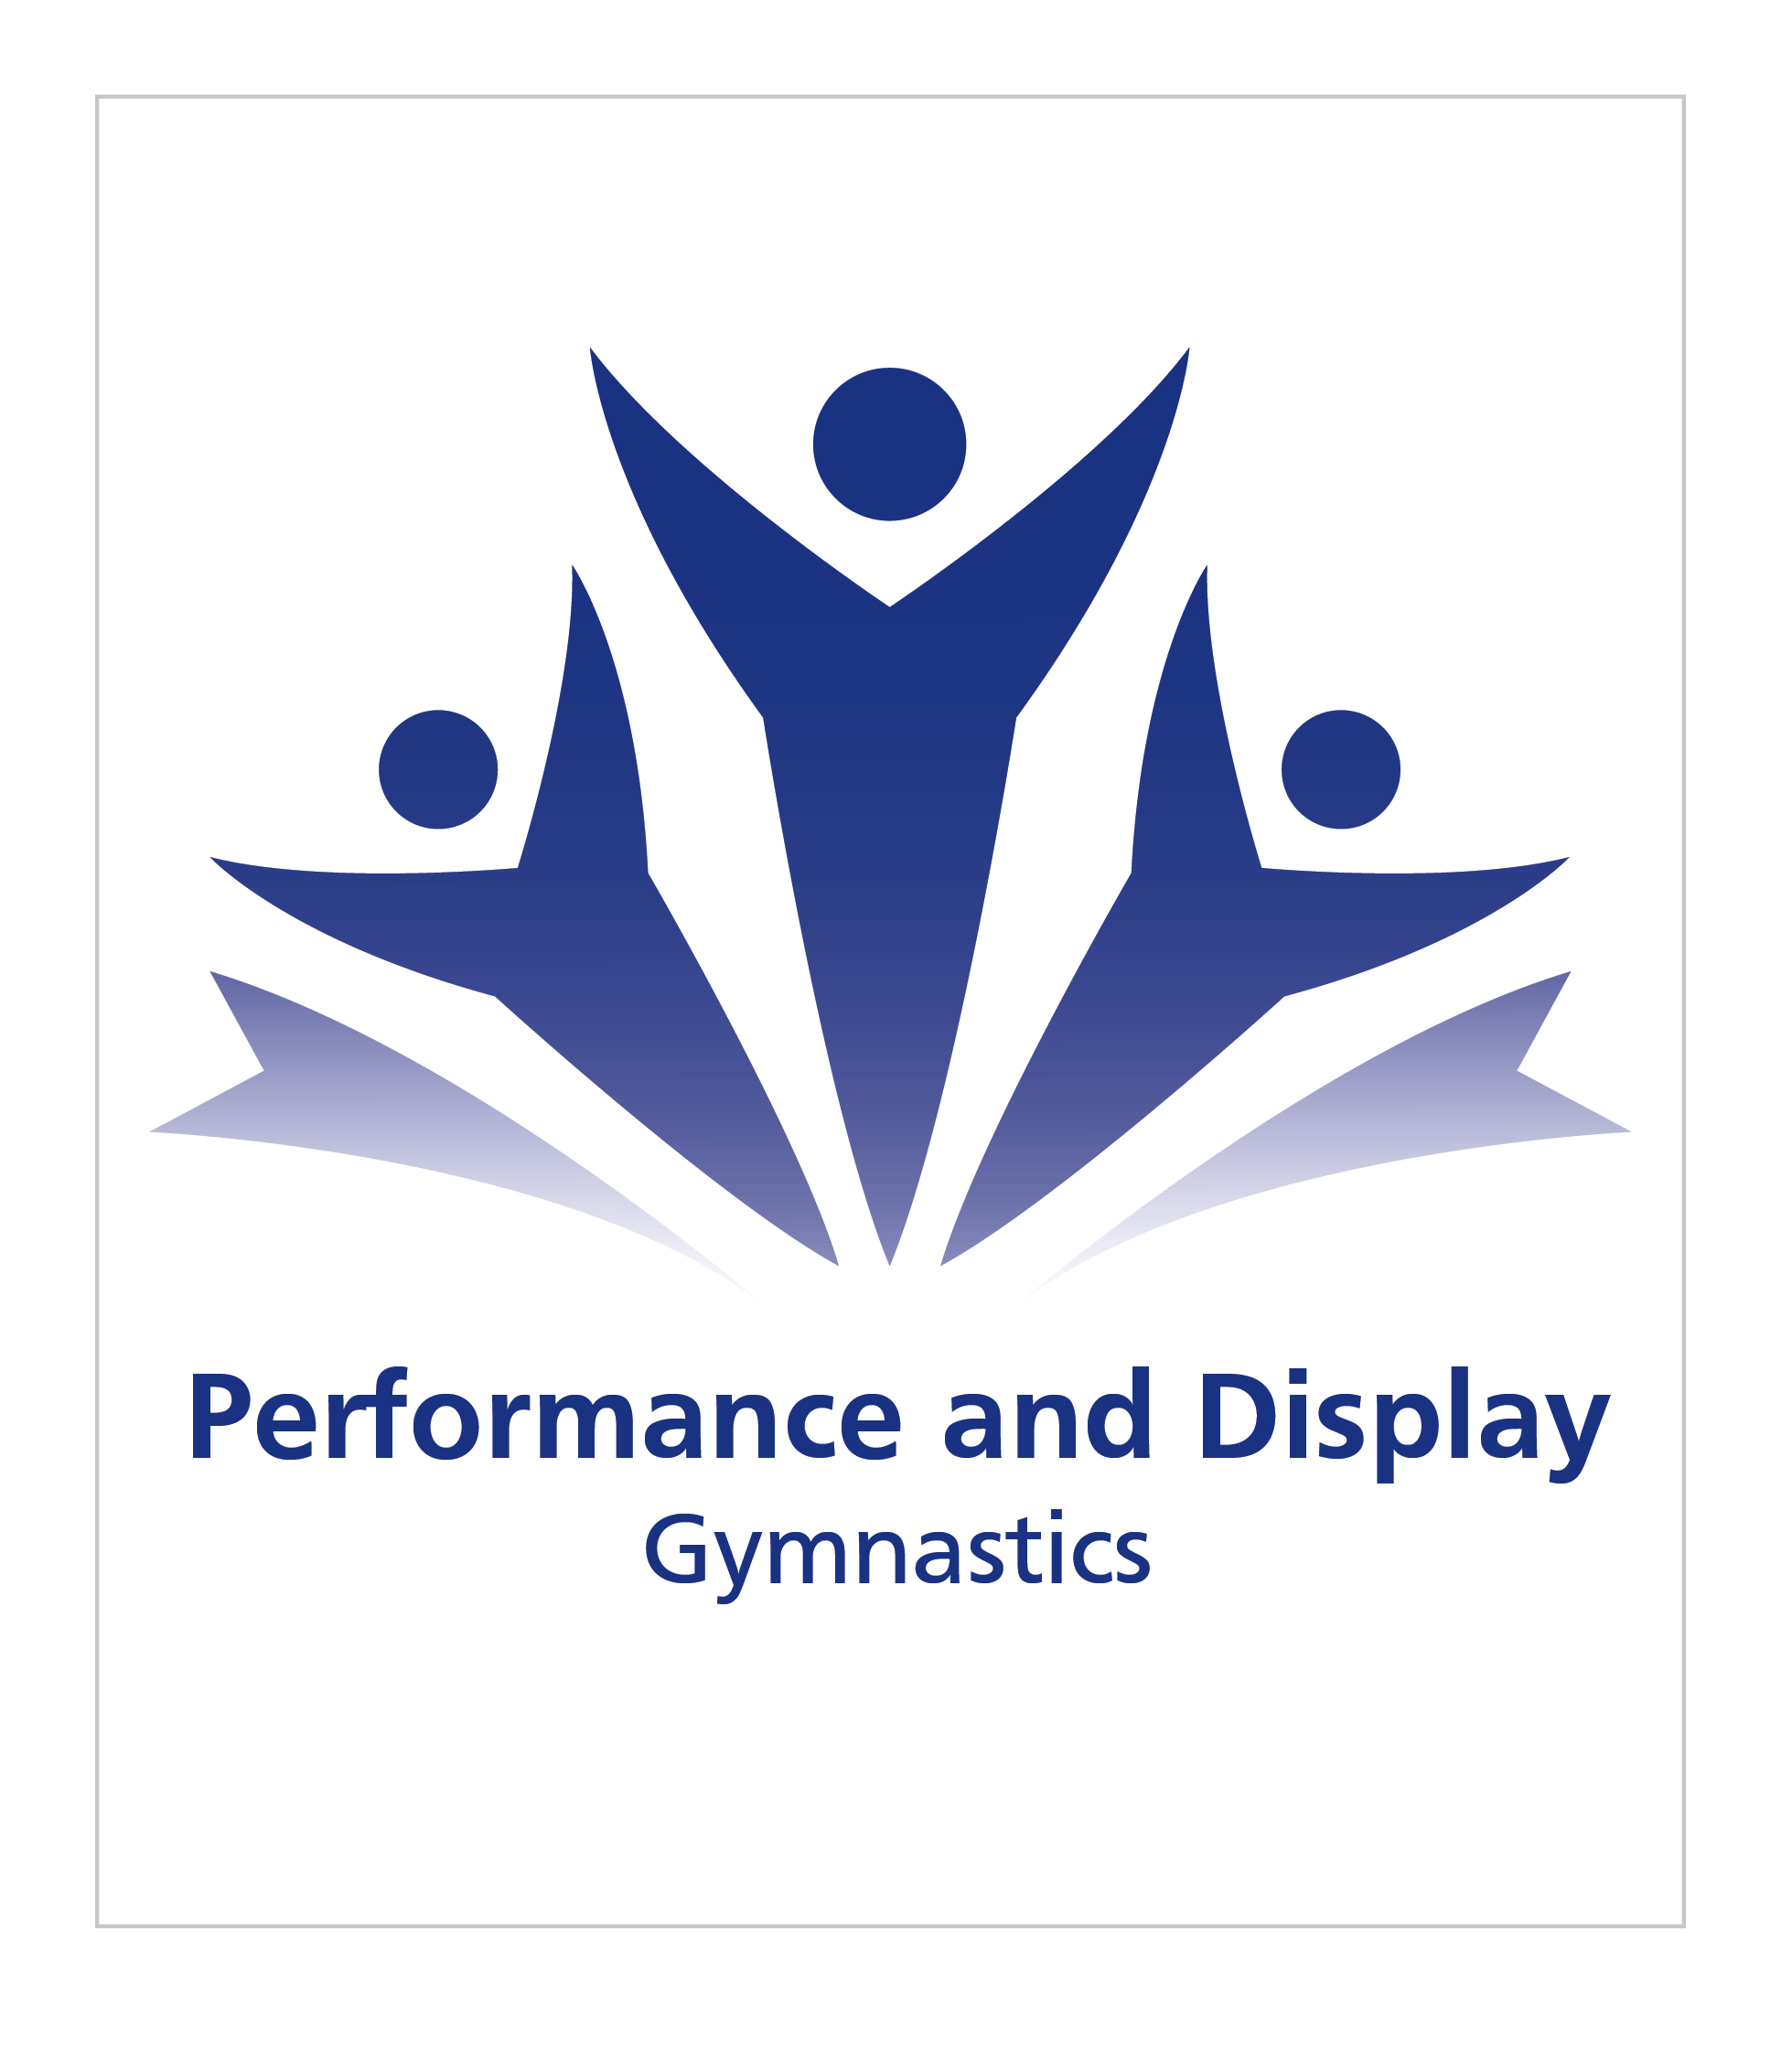 Performance & Display Gymnastics